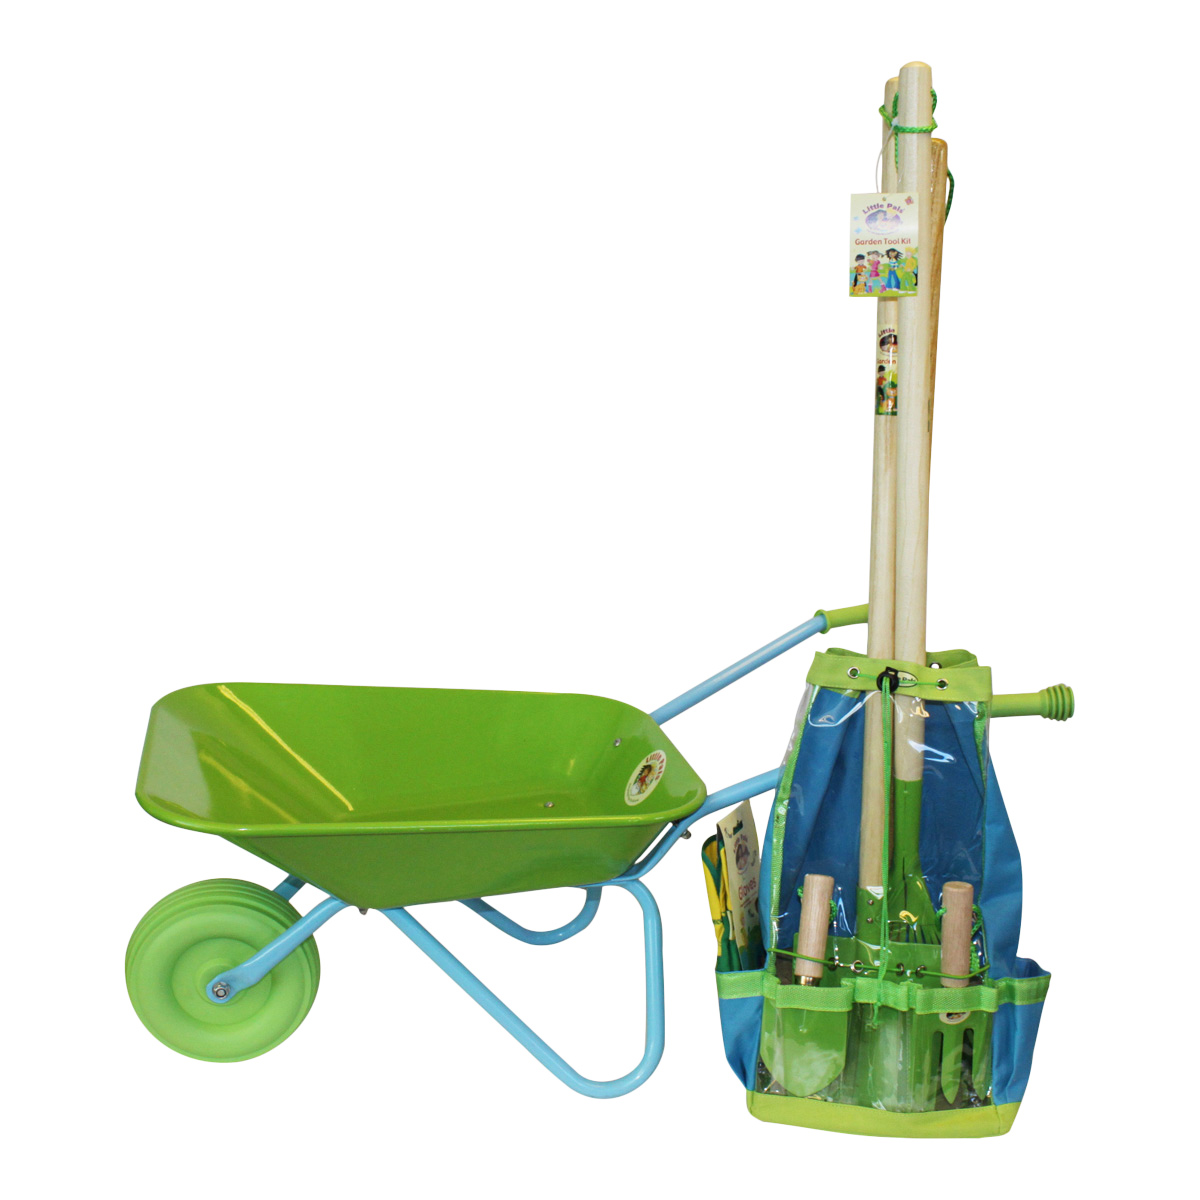 Childrens gardening tool set with wheelbarrow little pals for Childrens gardening tools